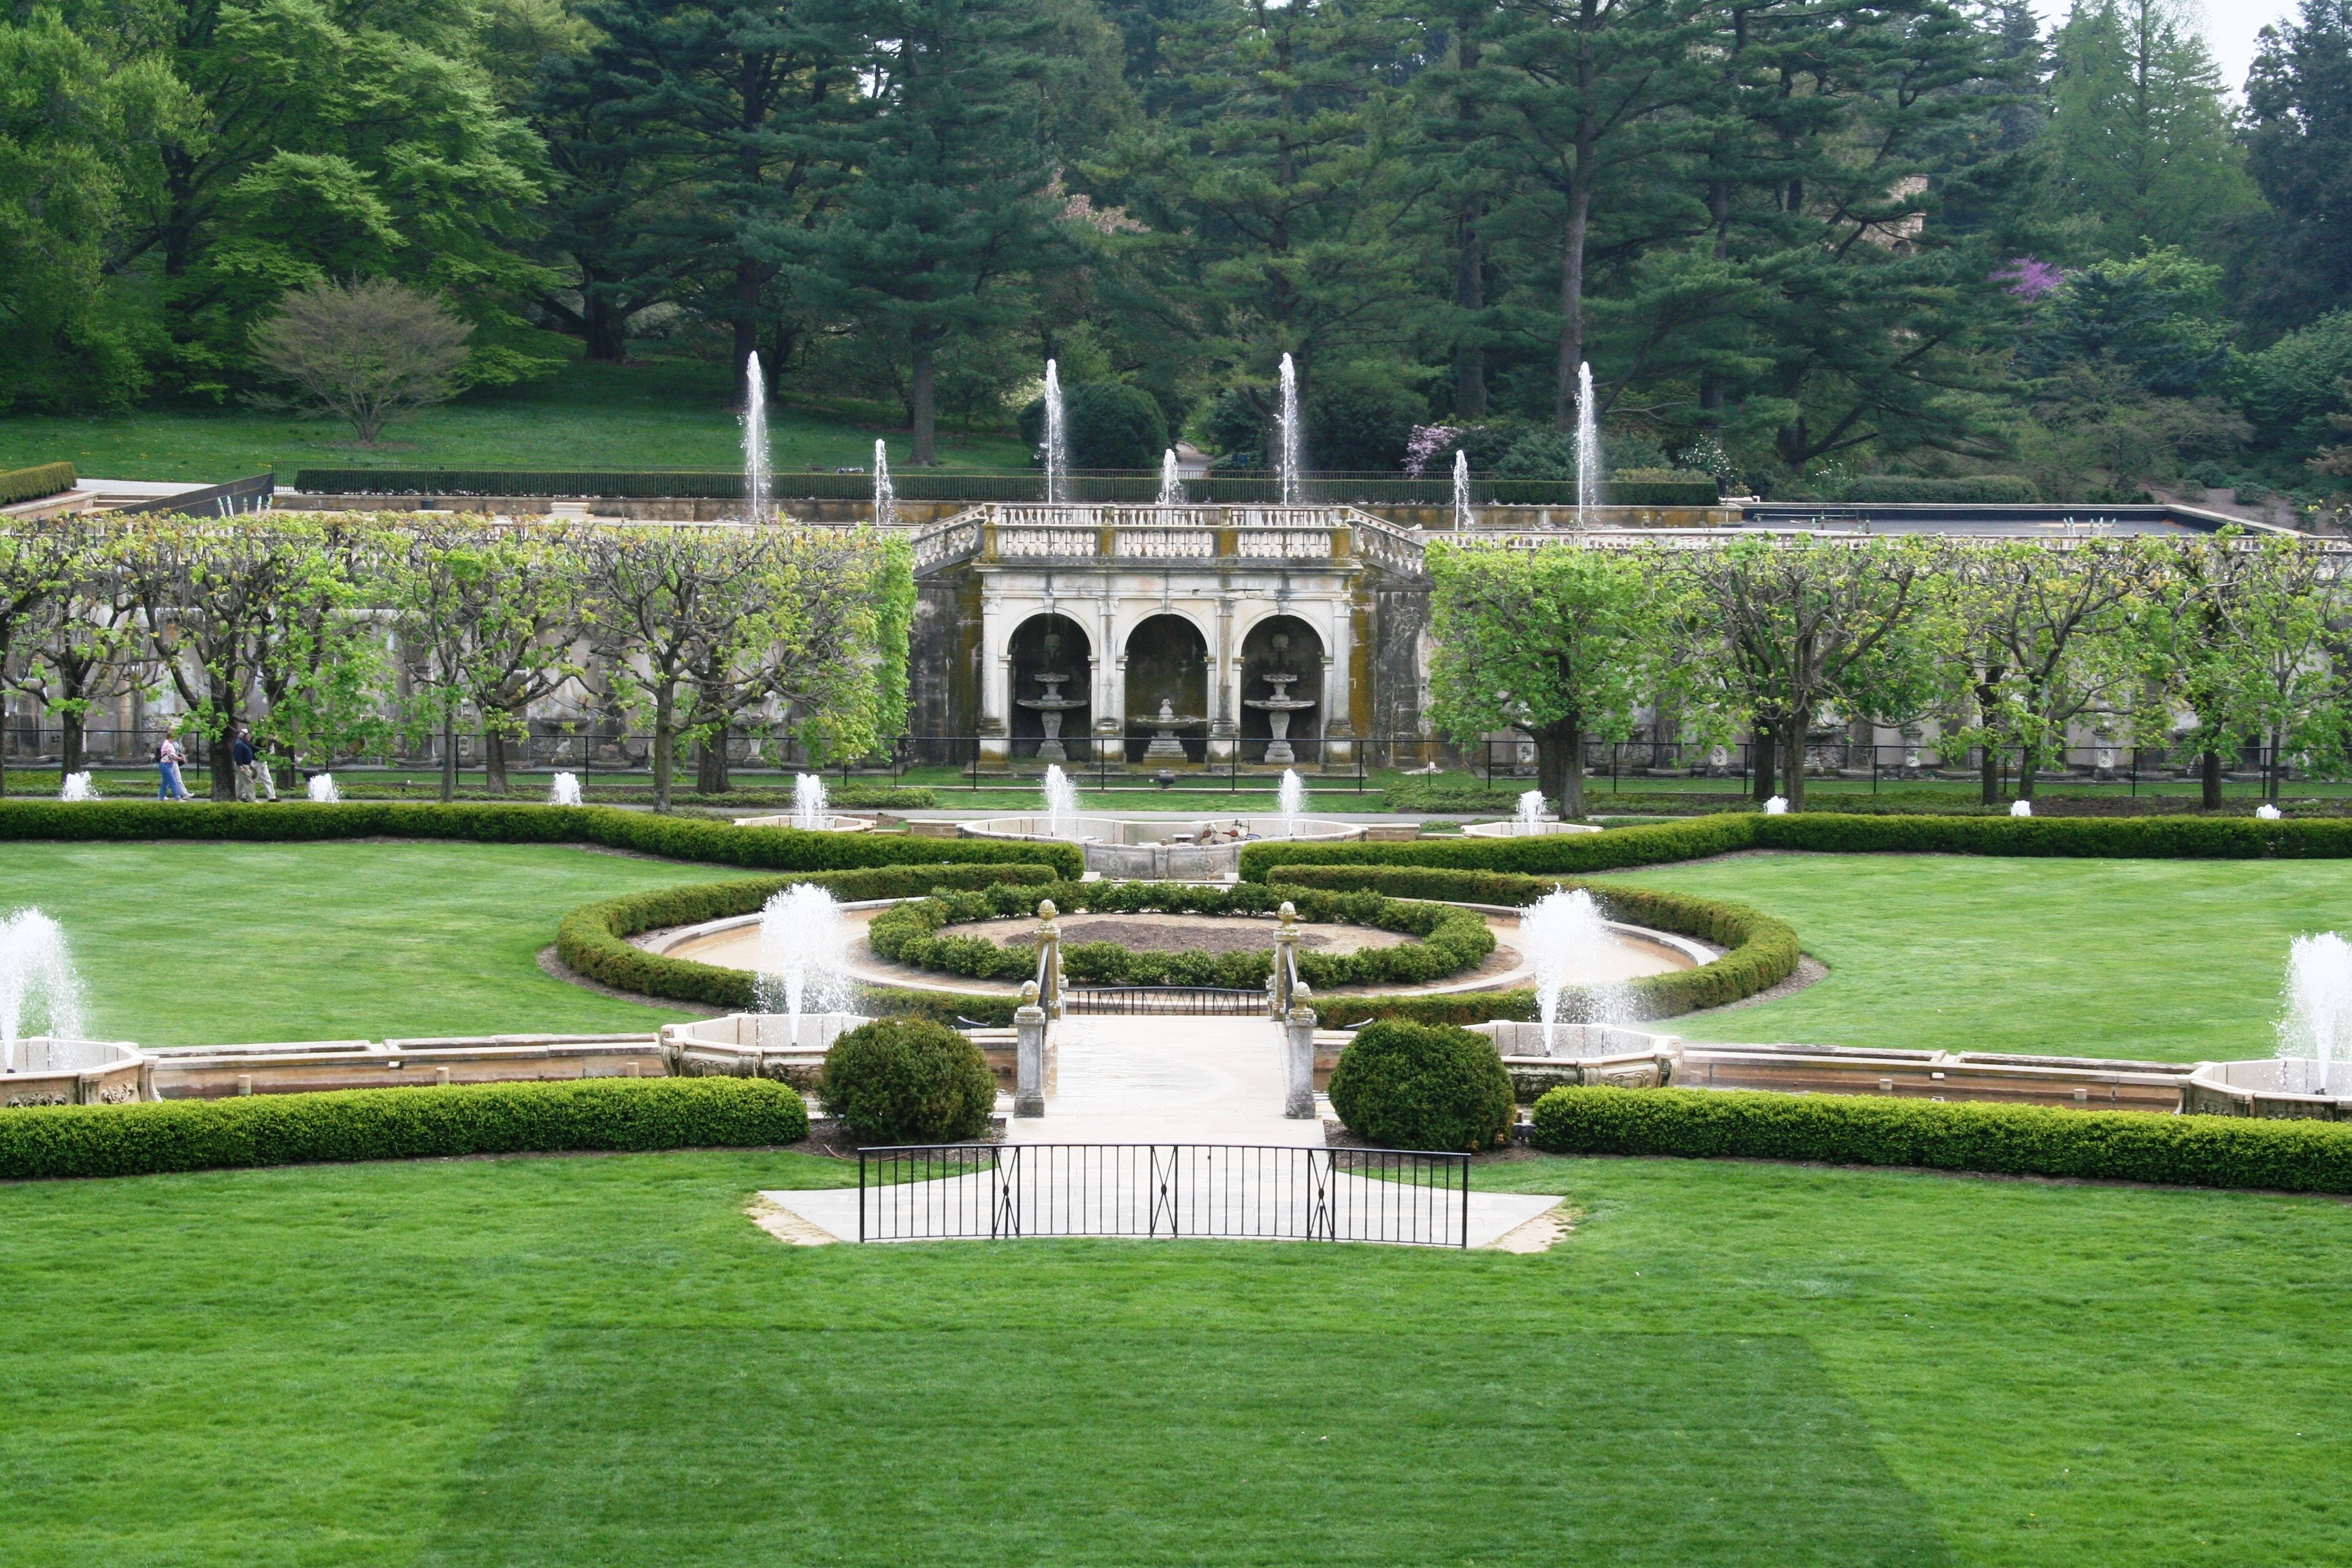 Merveilleux File:Longwood Gardens Fountains 2008.JPG